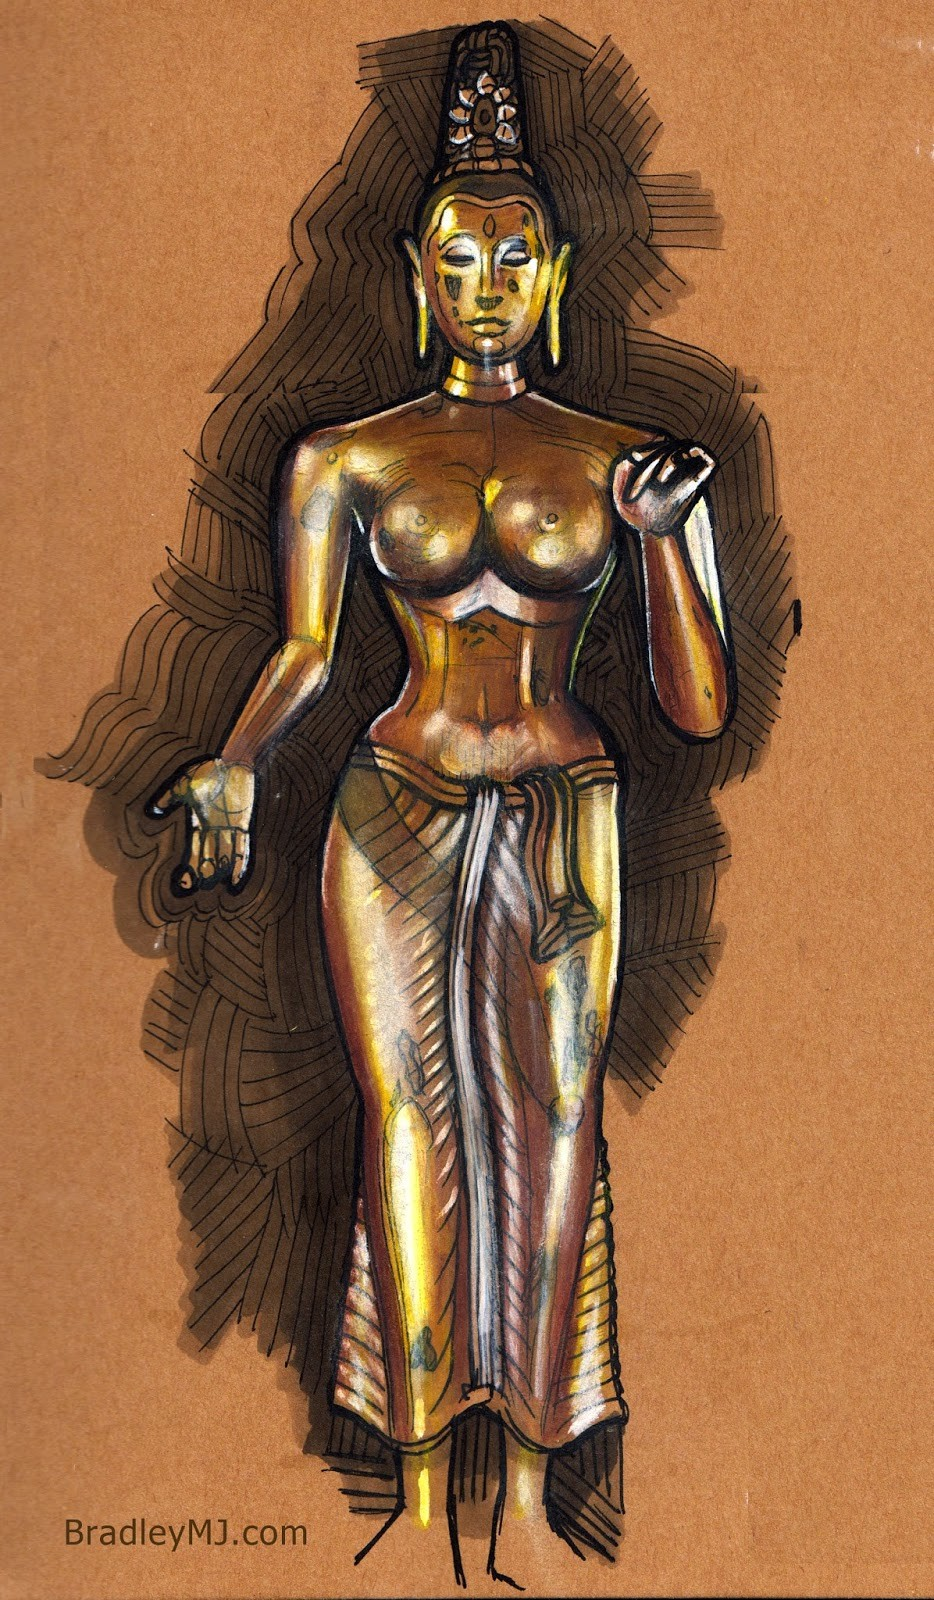 Museum study, ancient hindu goddess statue from Sri Lanka